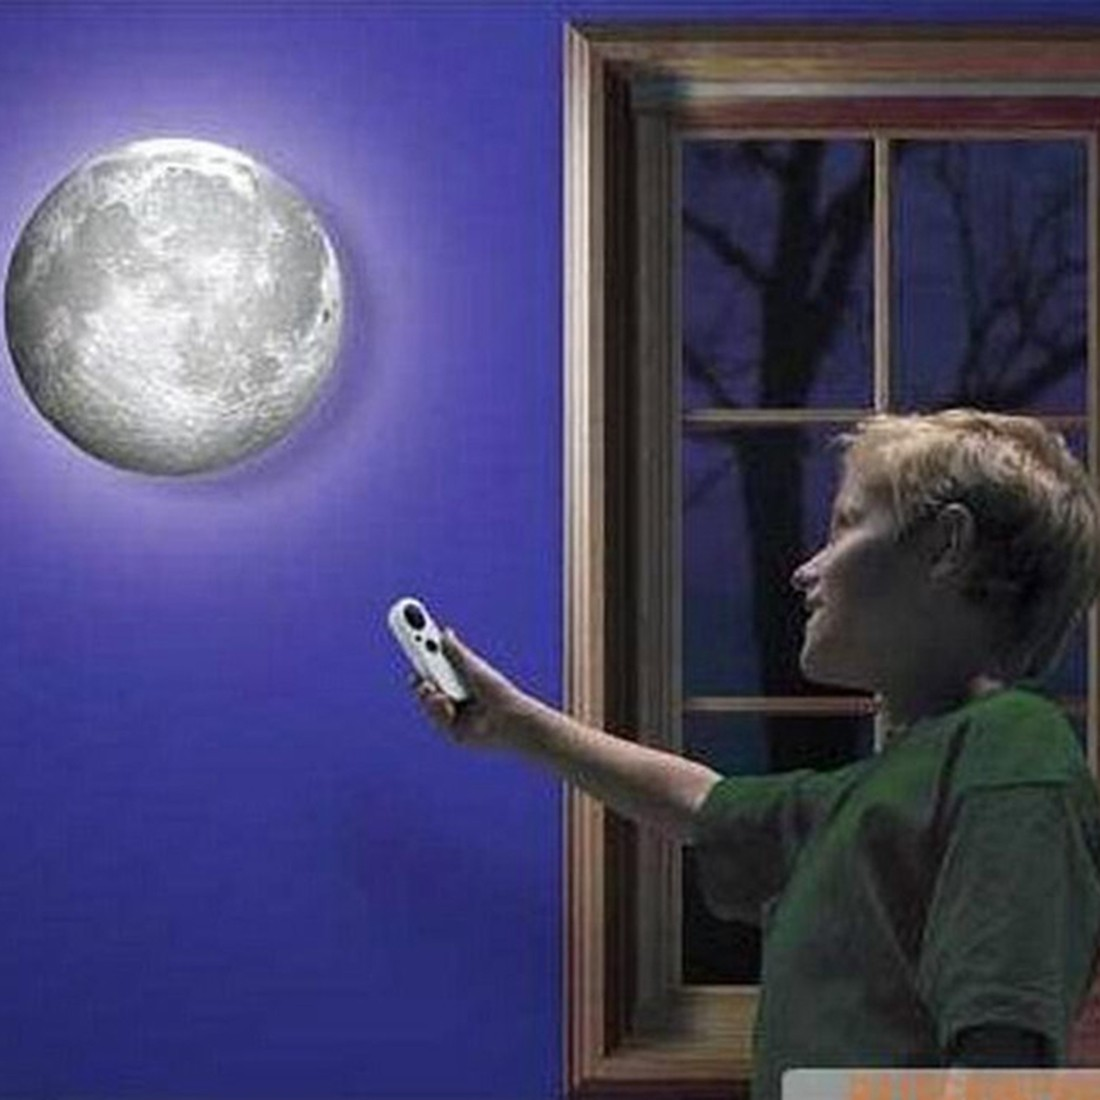 Wall Hanging Lamps 6 Kinds Phase Of LED Wall Moon Lamp With Remote Control Healing Moon Wall Ceiling Lamp For Kids